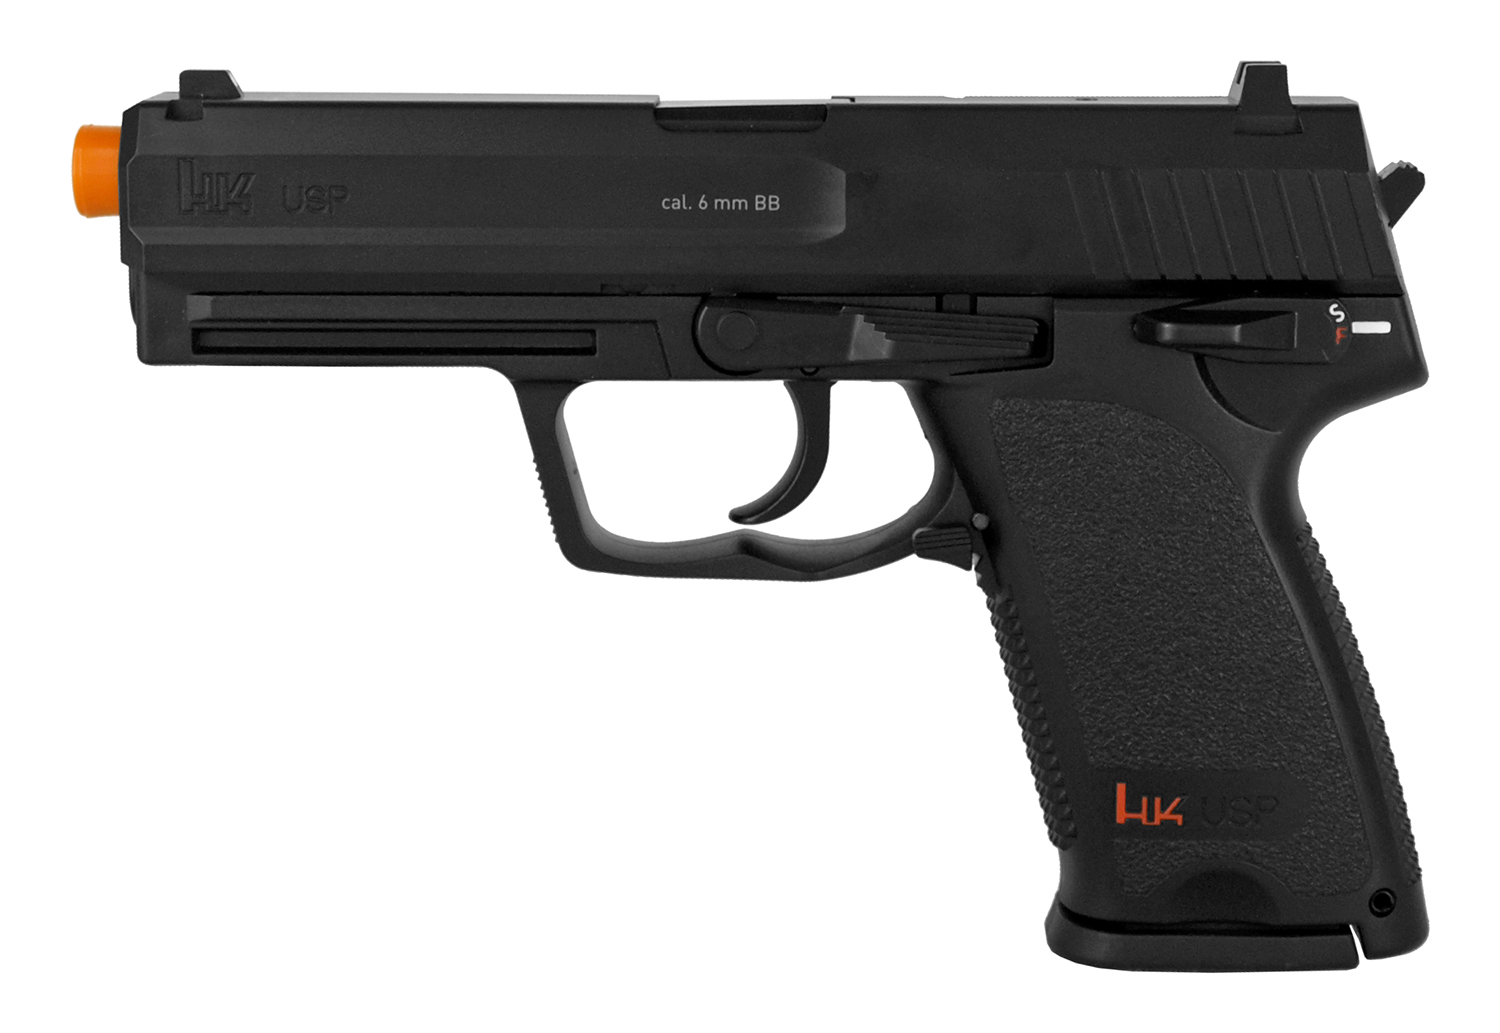 H&K USP CO2 Airsoft Pistol - Refurbished